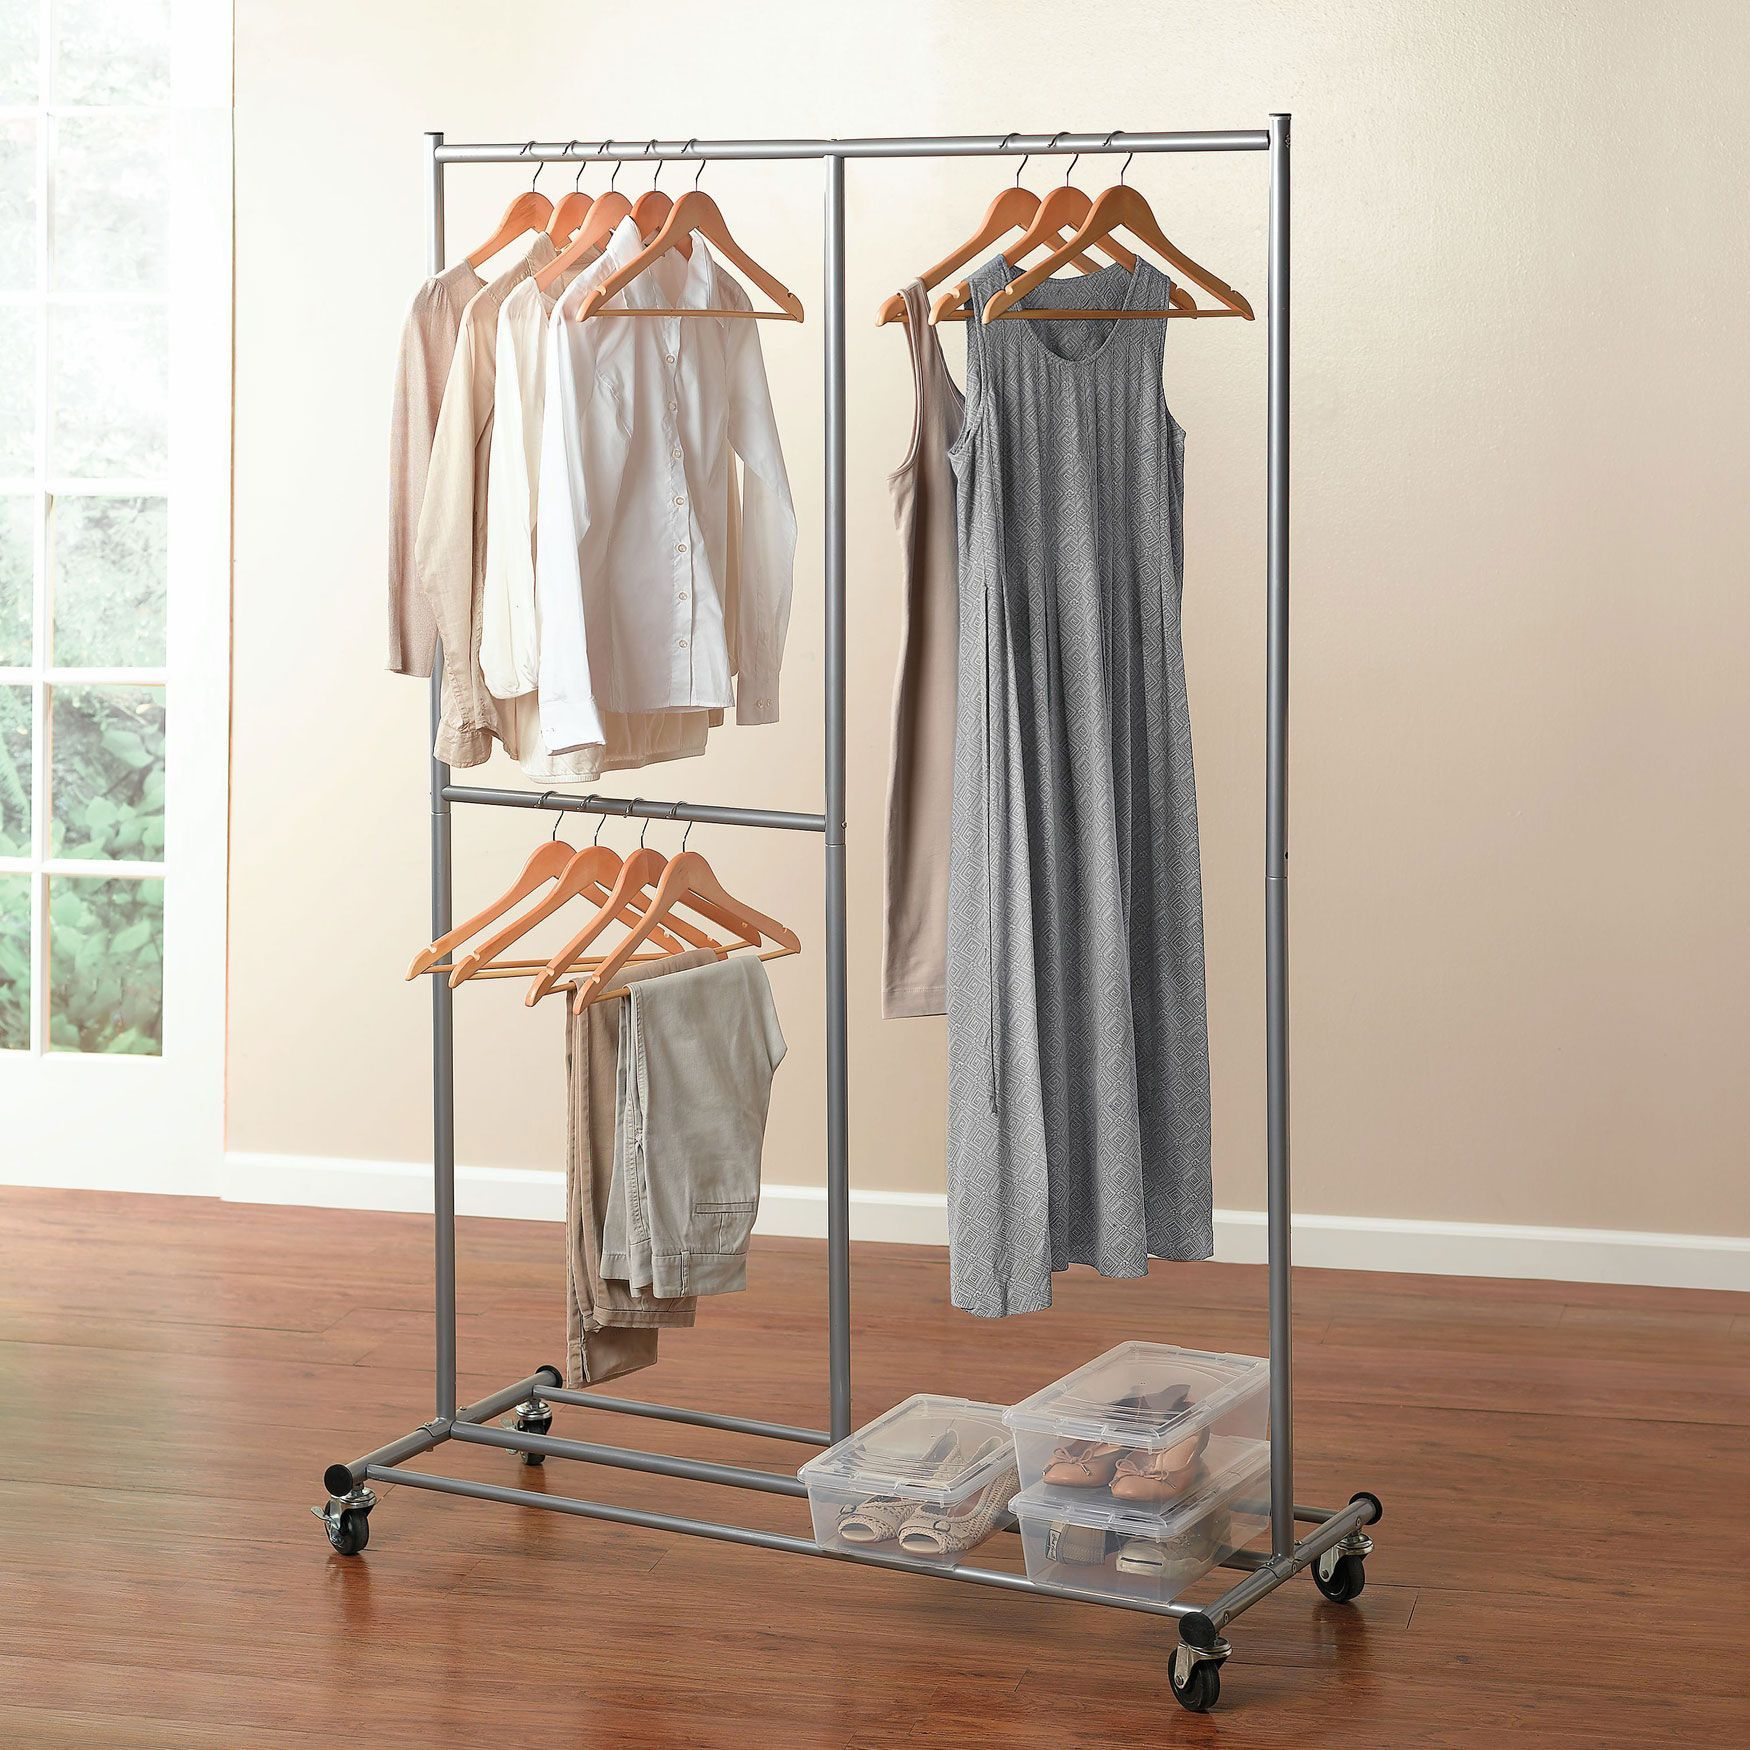 Portable And Expandable Garment Rack In Black Chrome 18 Months Alluring Jumbo Rolling Garment Rack  Closet  Brylanehome  Organizing My